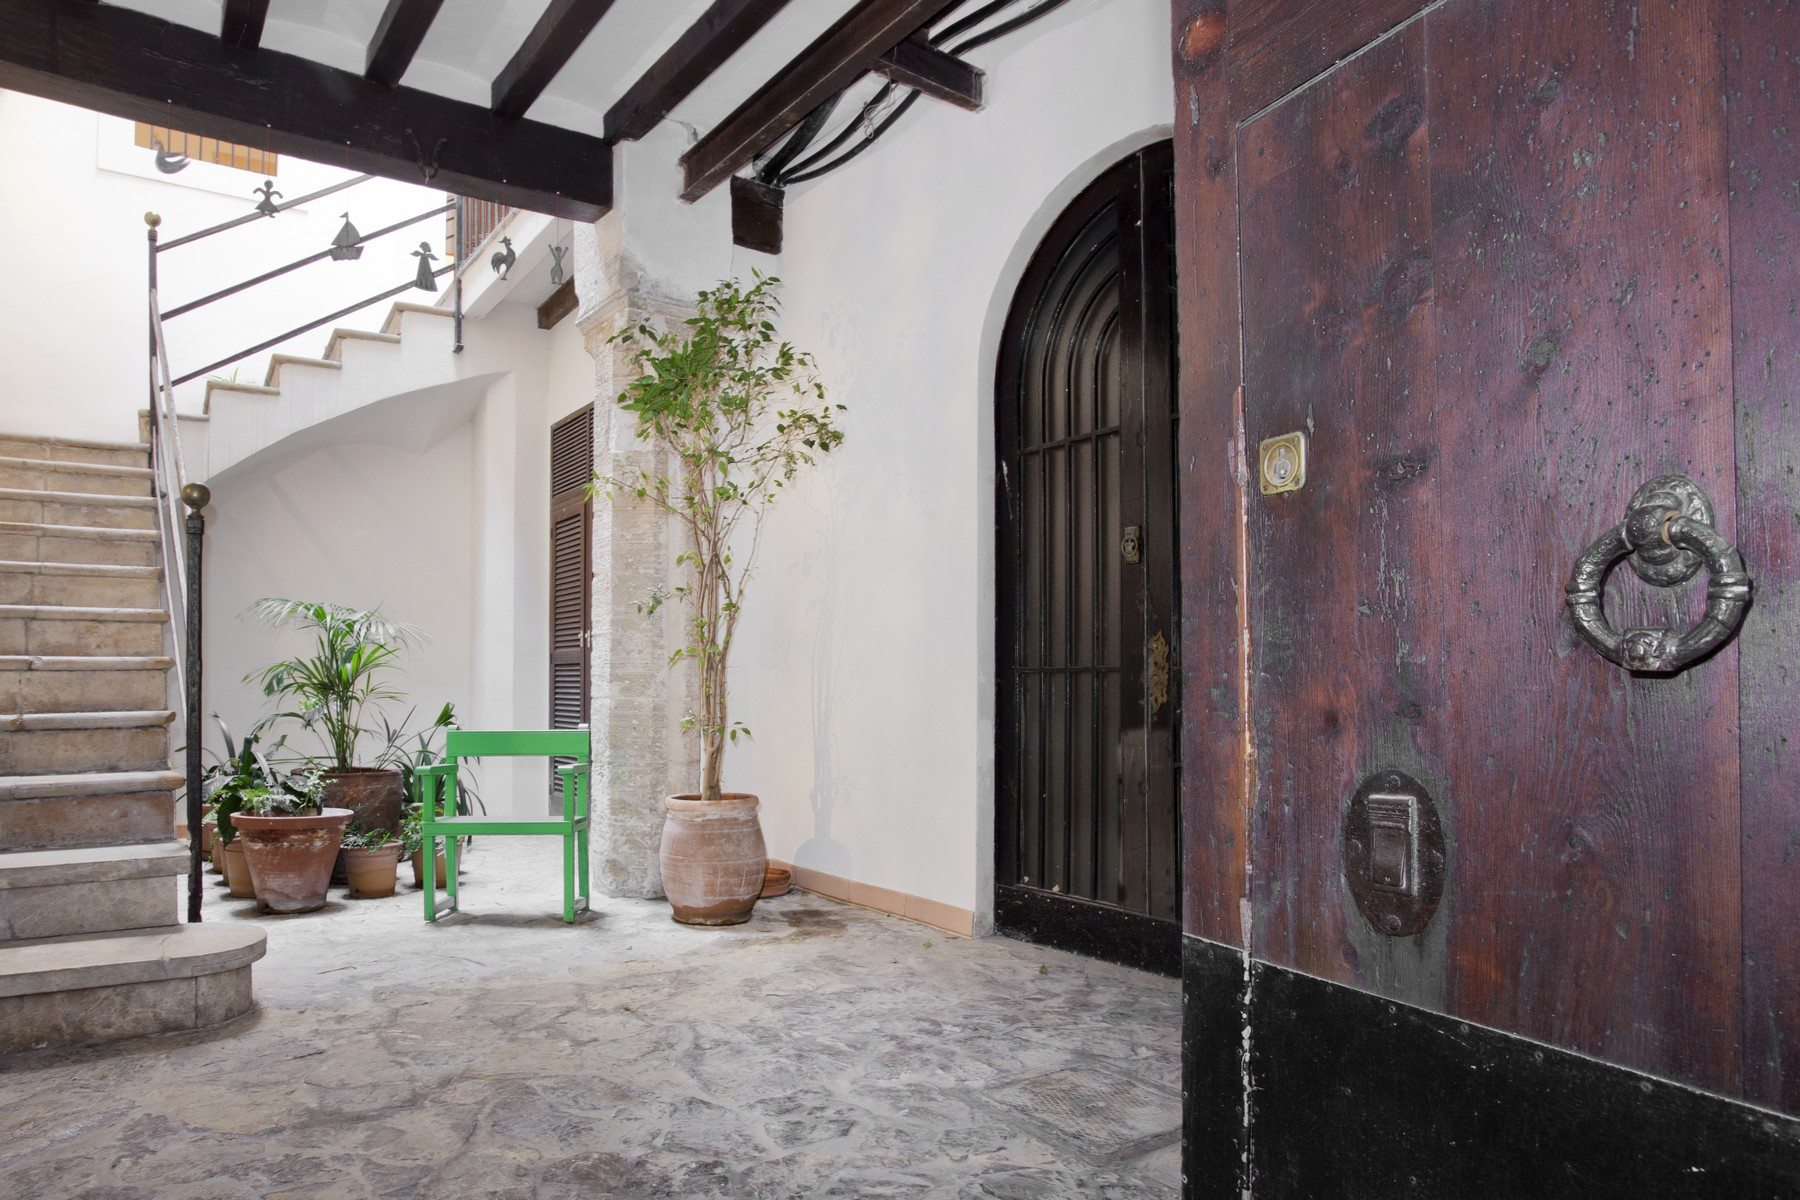 Single Family Home for Sale at Duplex Penthouse in the centre of Palma Palma Center, Mallorca, 07001 Spain